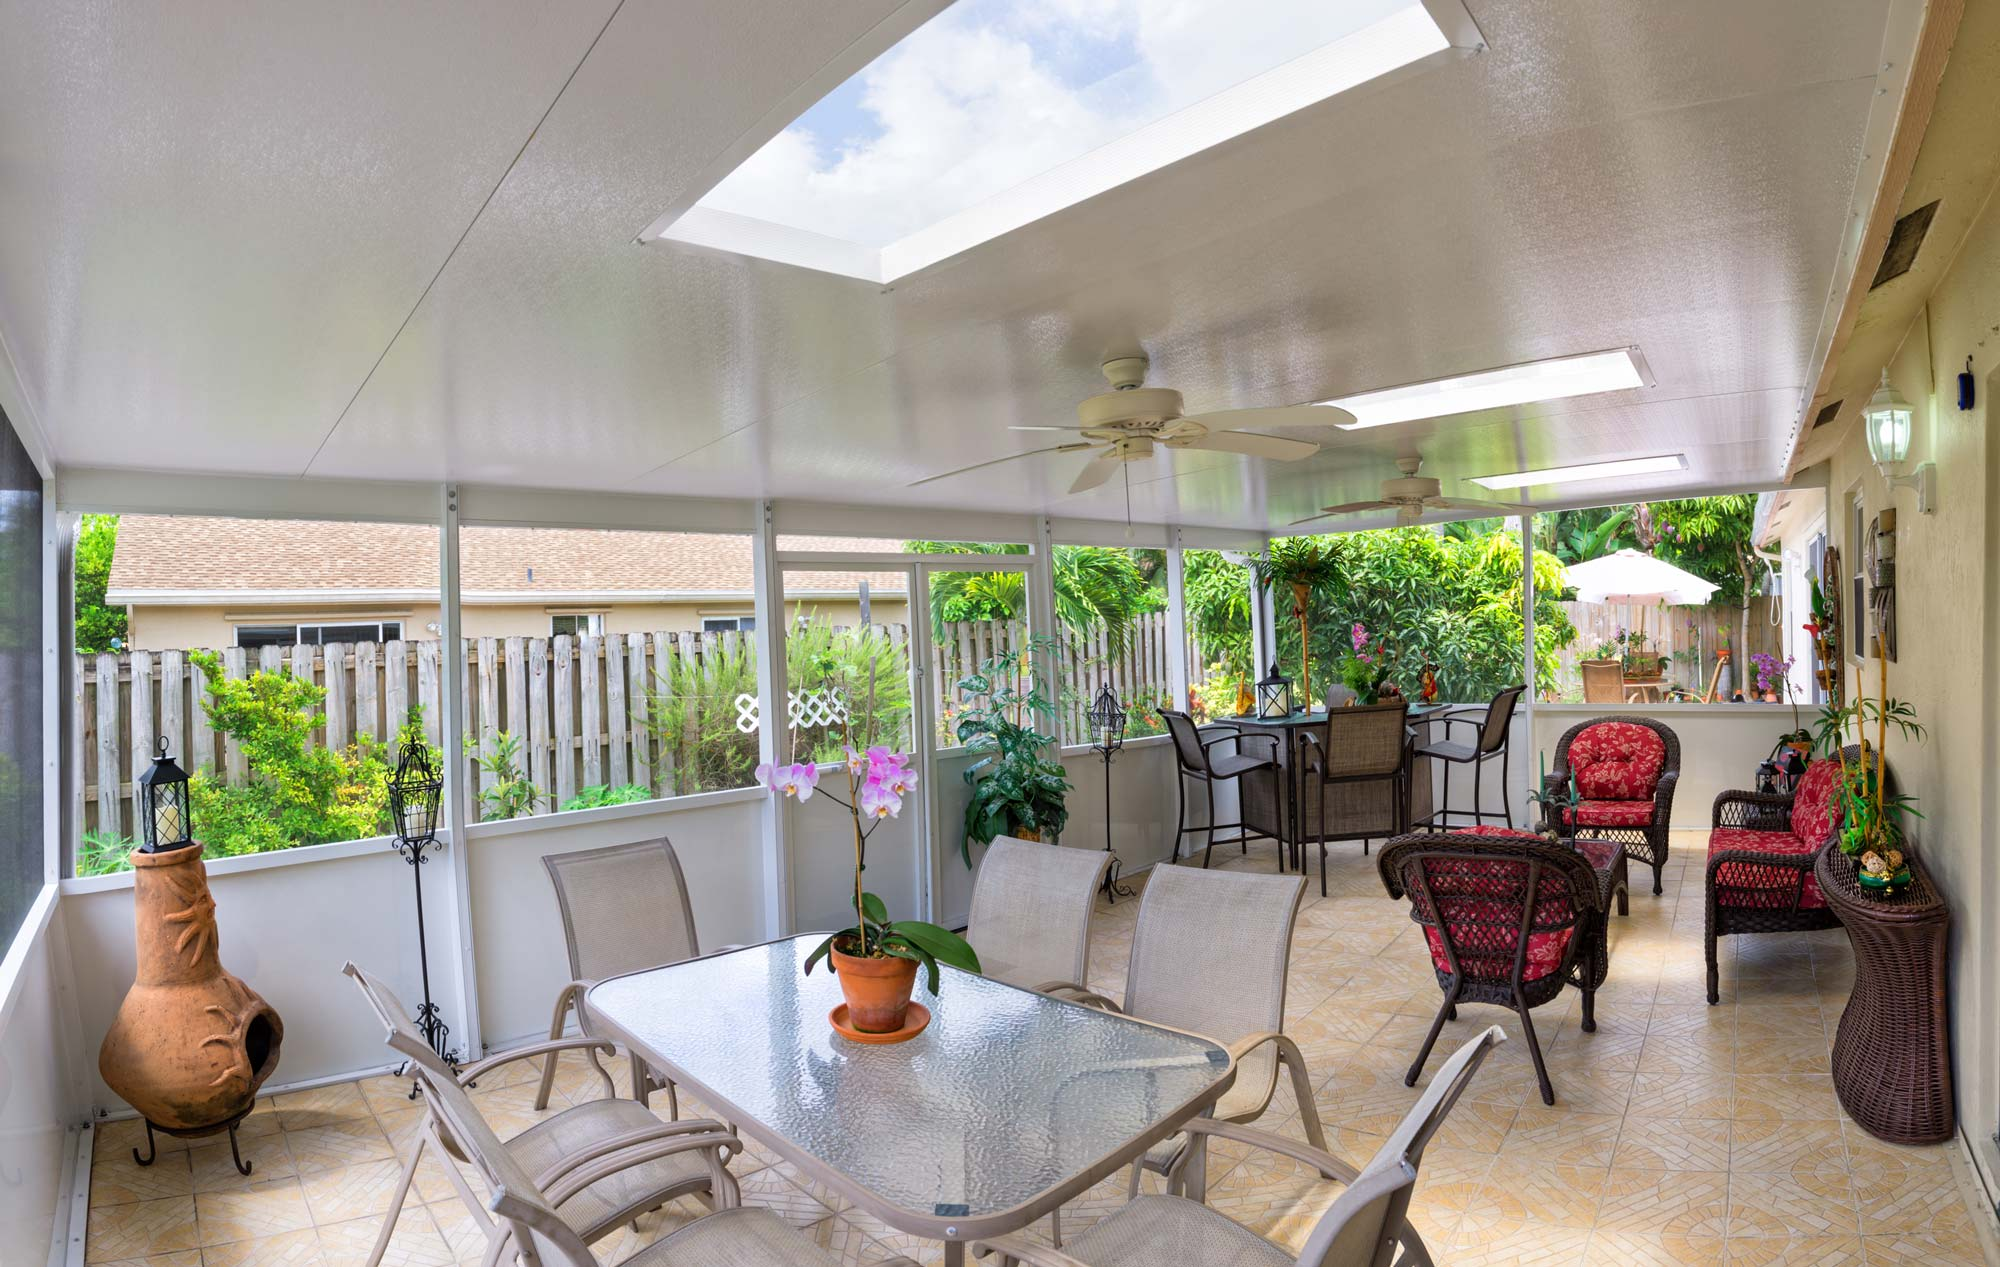 Turn-your-patio-into-an-outdoor-Florida-Room-with-aluminum-patio-roofing-from-Venetian-Screen-and-Sunroom.